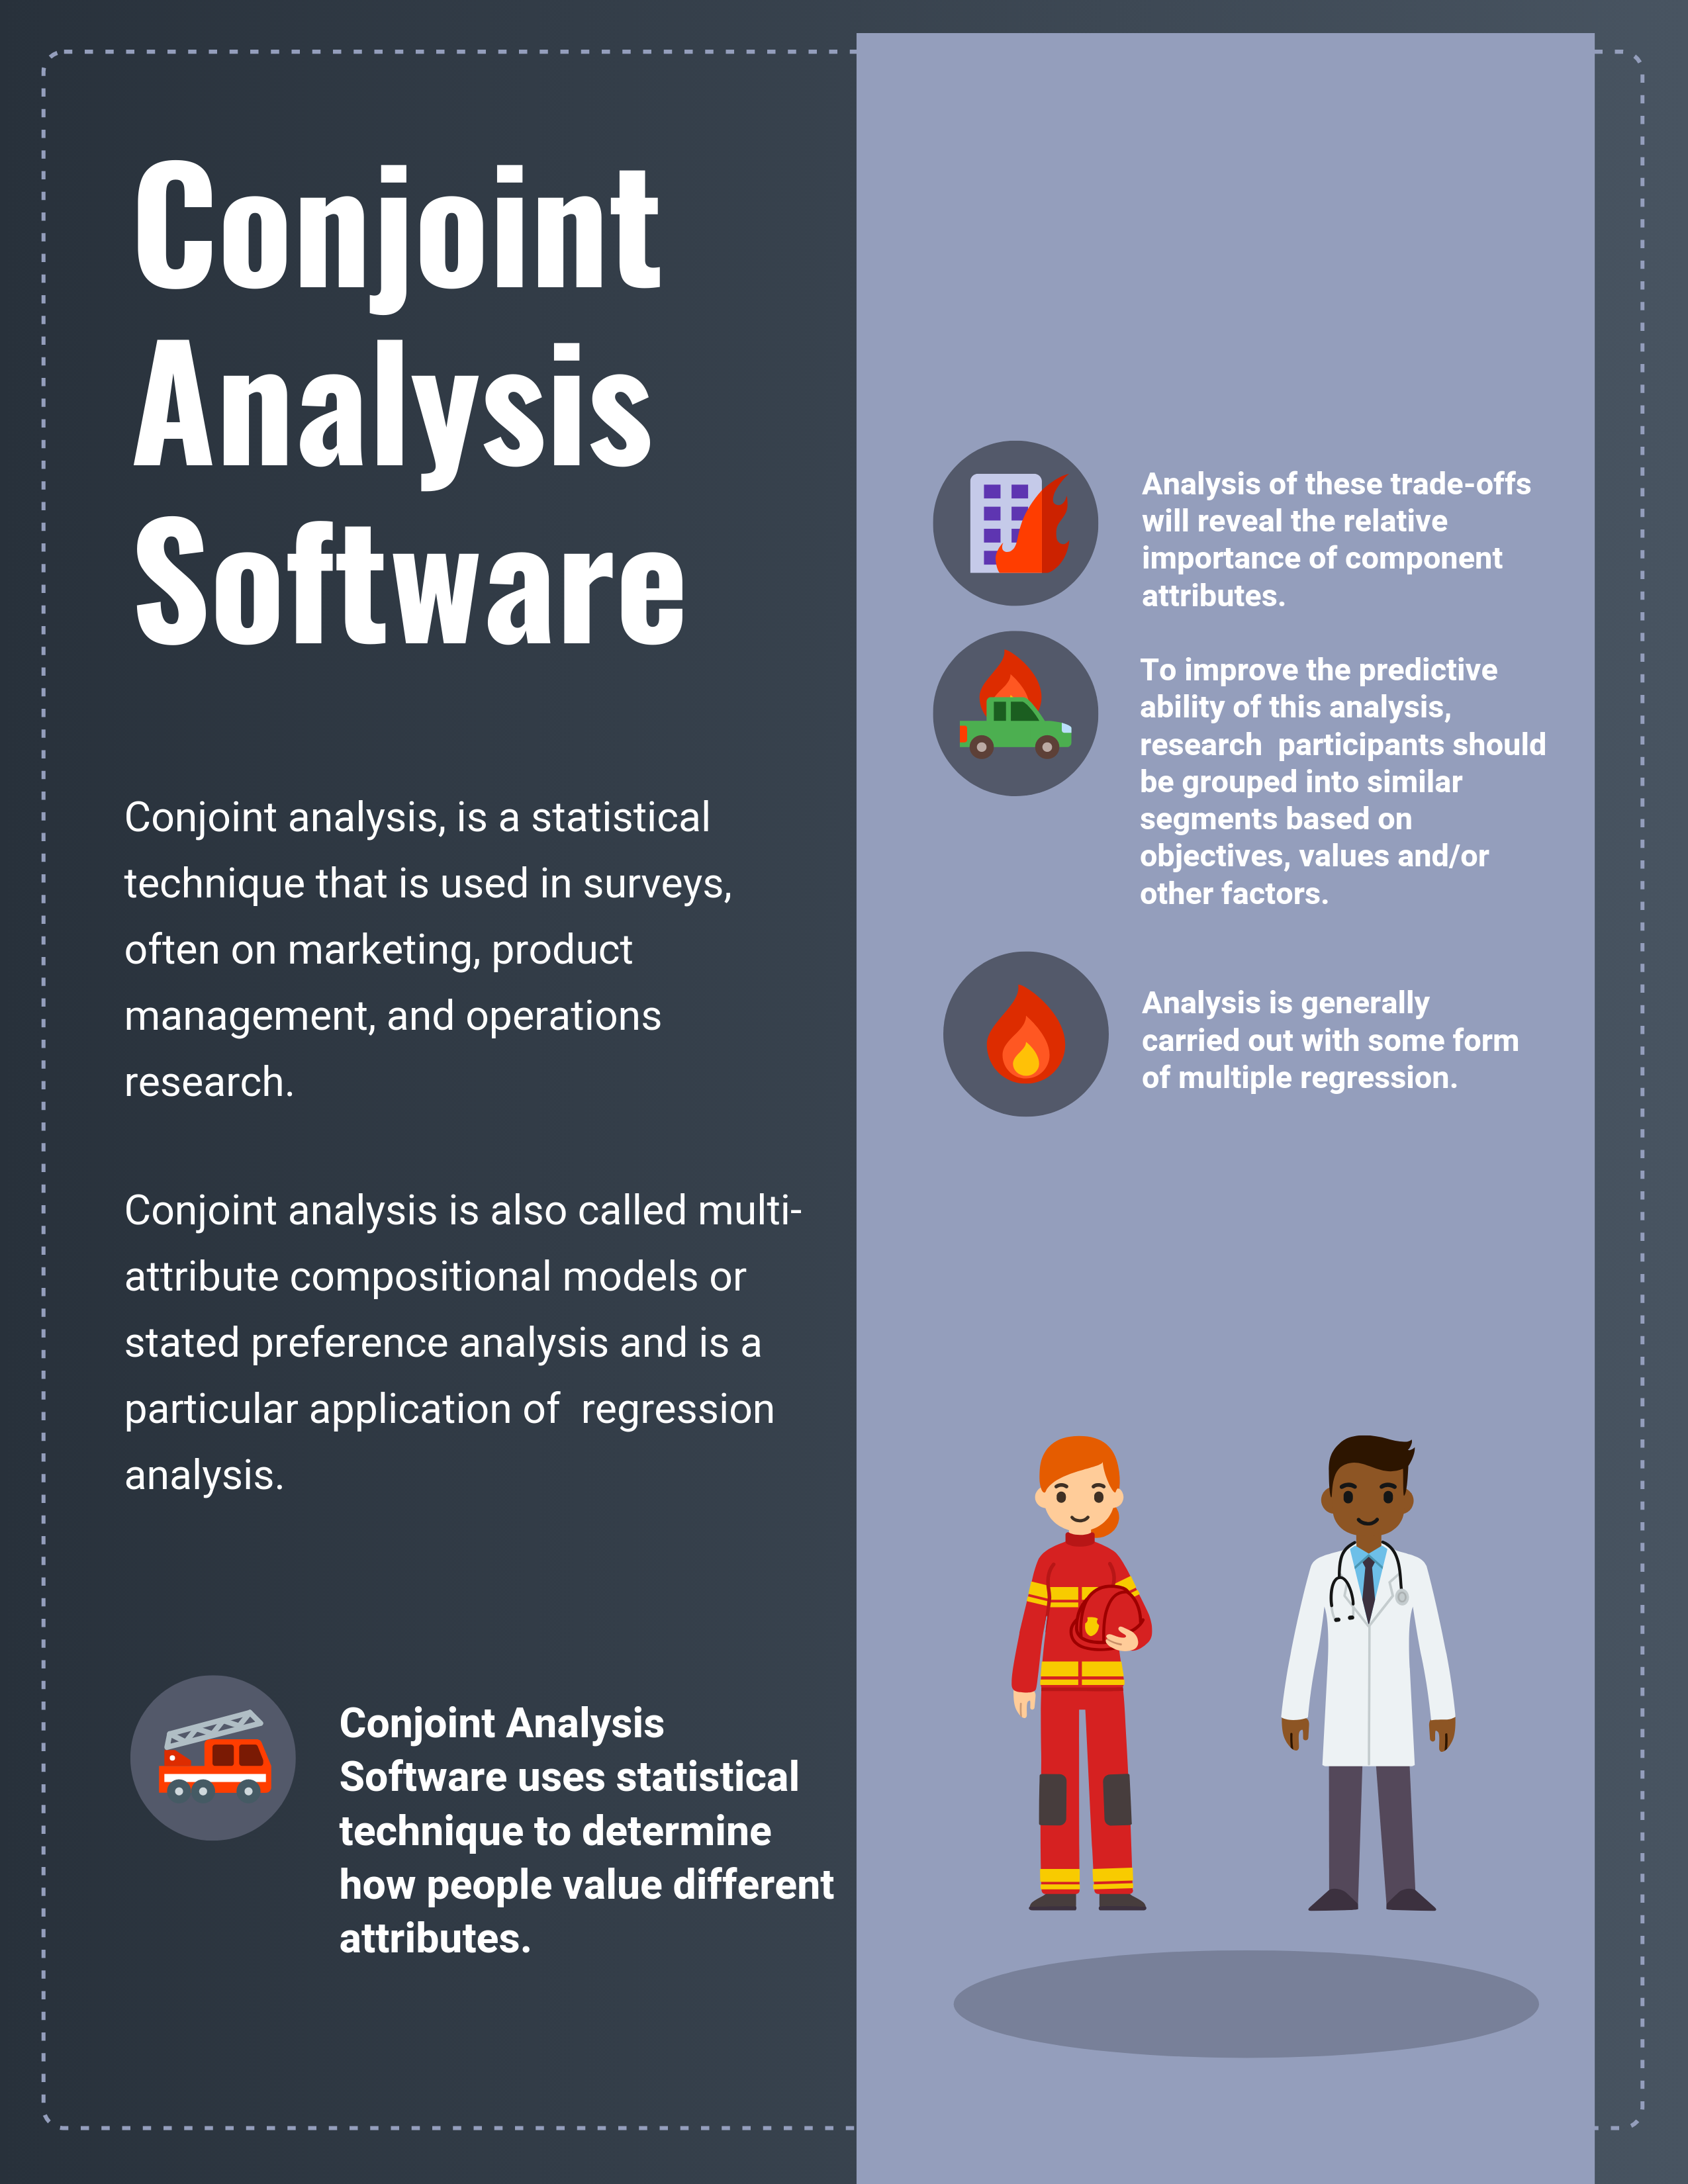 Top 6 Conjoint Analysis Software In 2020 Reviews Features Pricing Comparison Pat Research B2b Reviews Buying Guides Best Practices